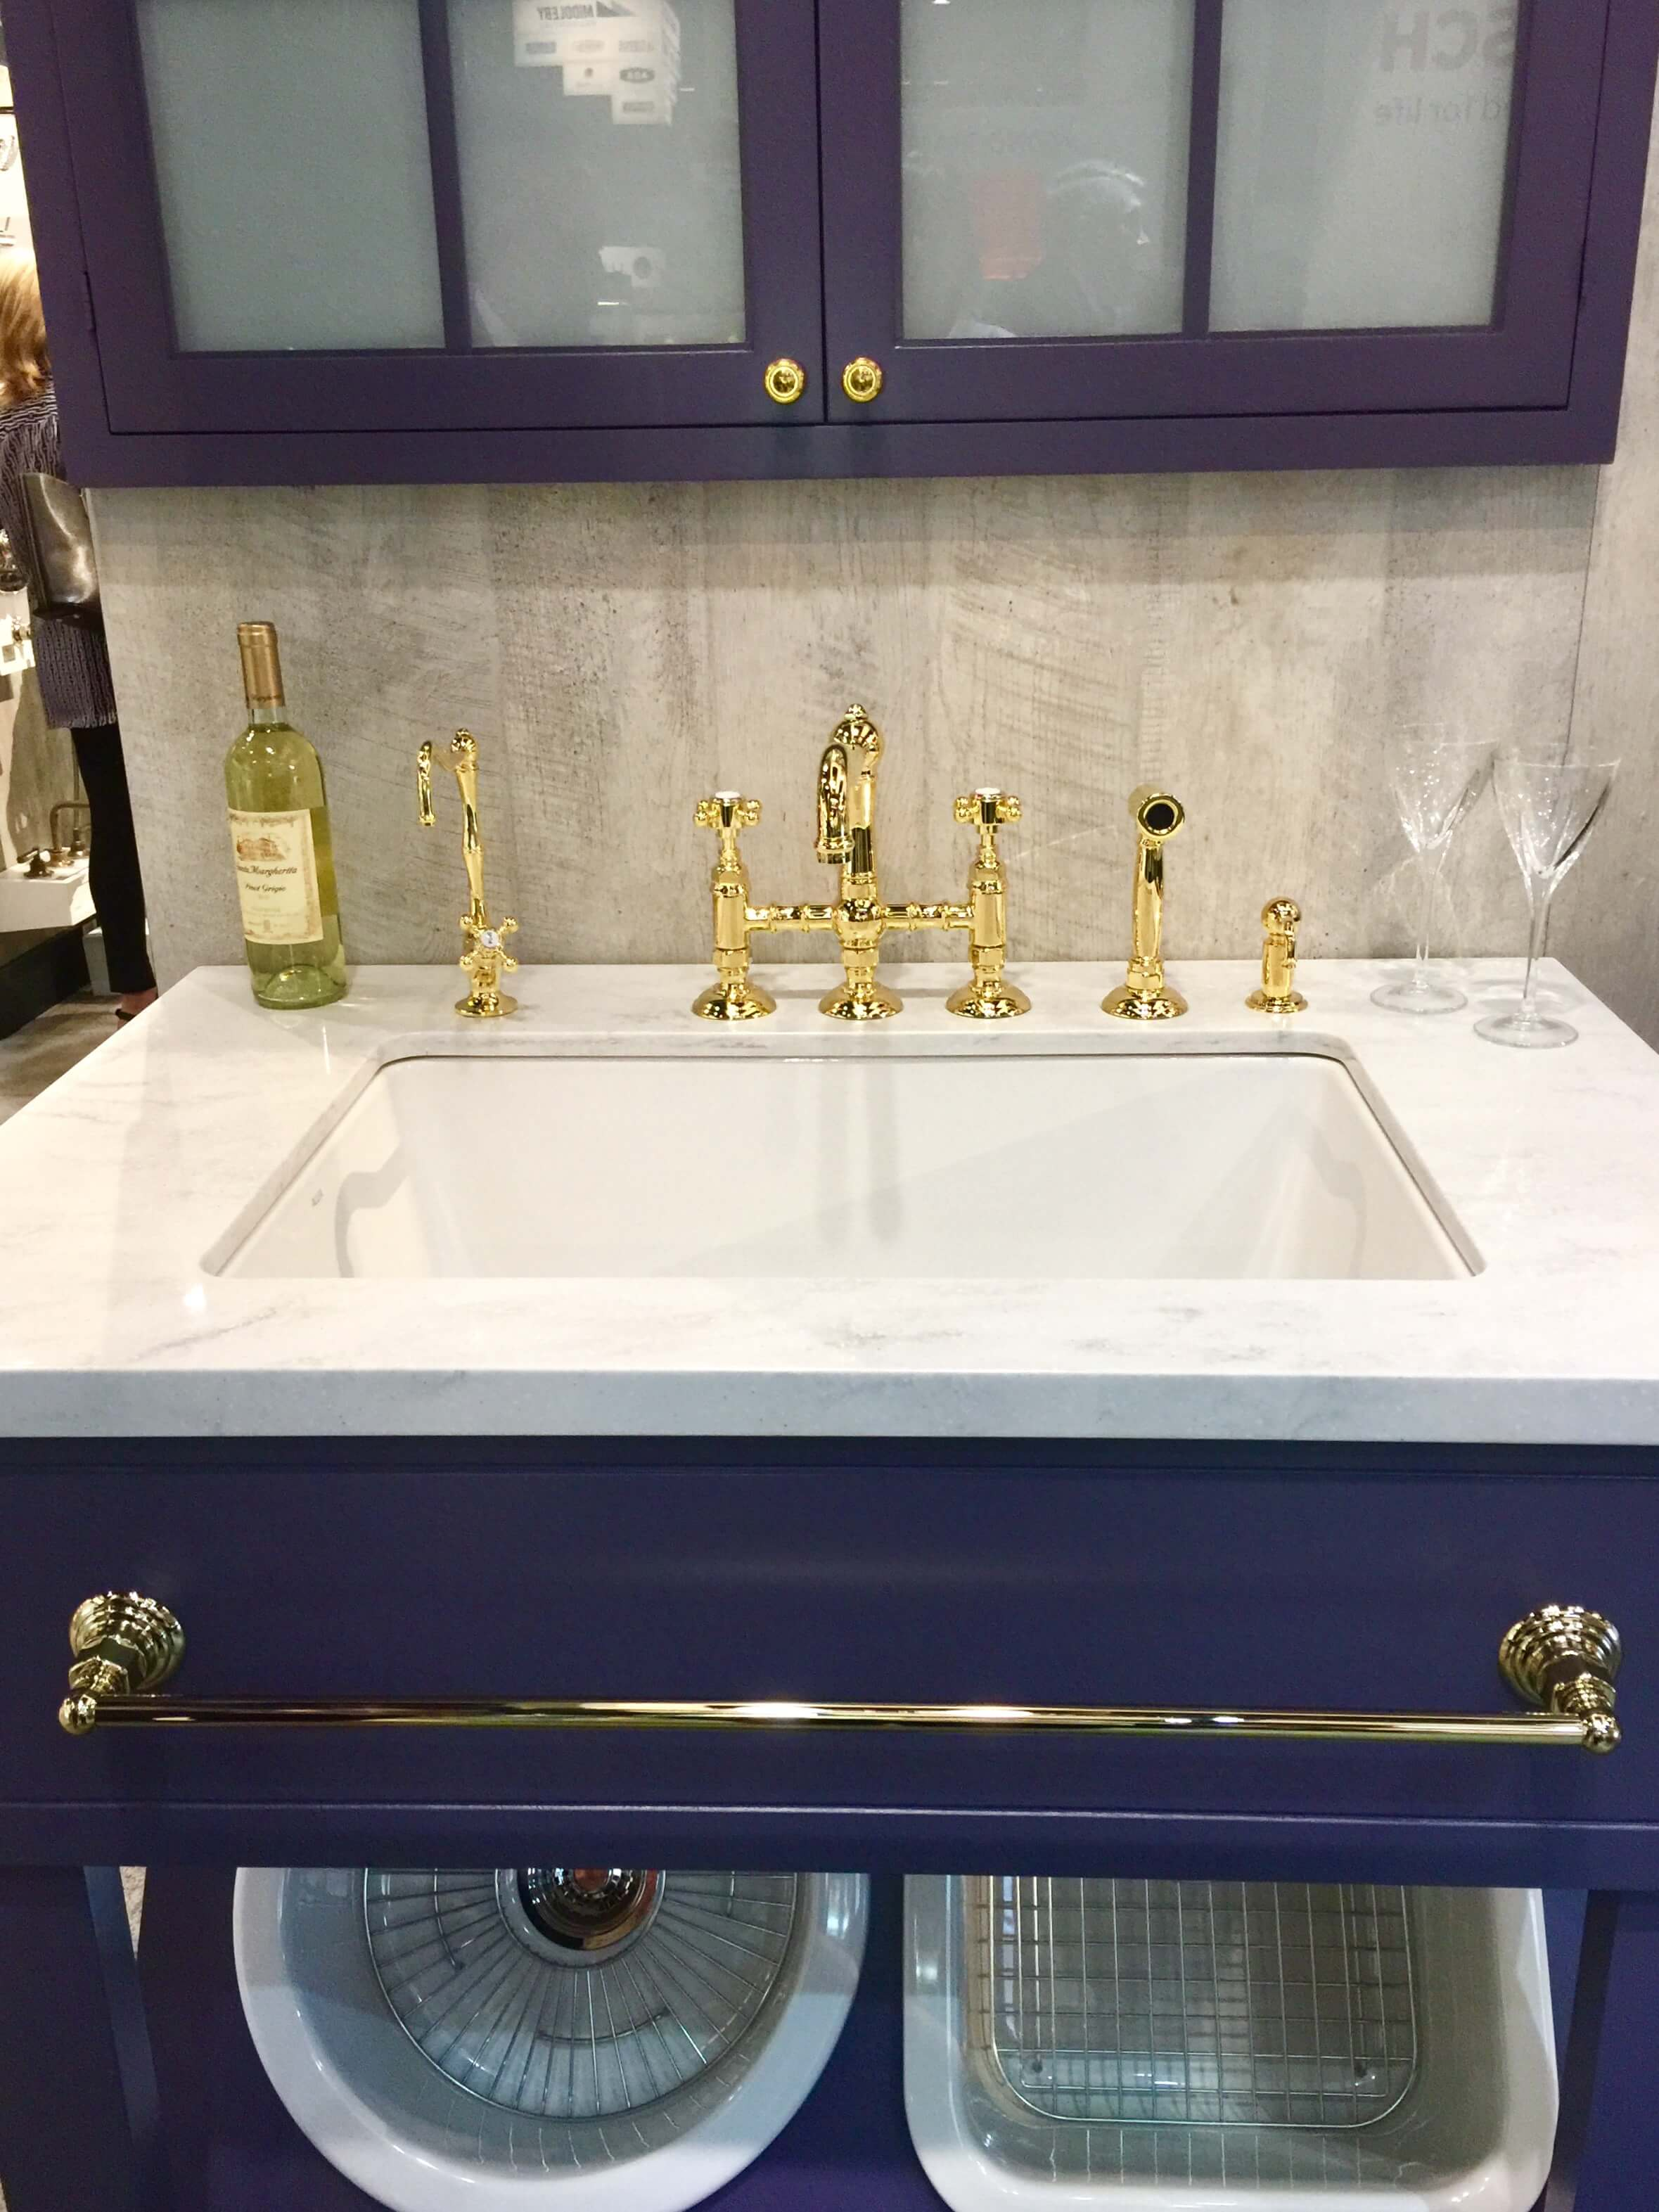 Blue cabinets look gorgeous with white counters and brass faucets and fittings from Rohl